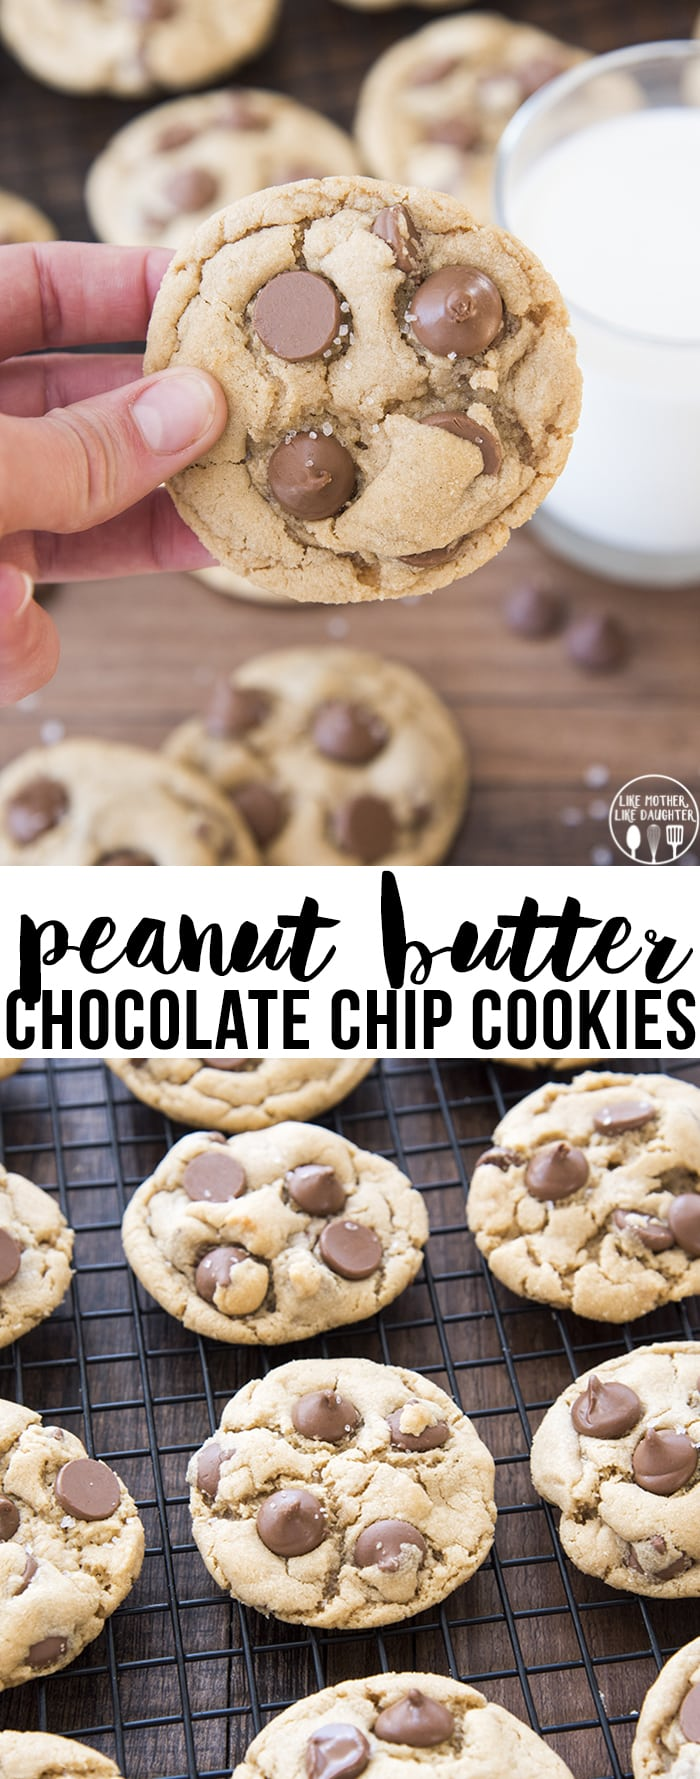 eanut butter chocolate chip cookies have a scrumptious peanut butter cookie and are packed full of chocolate chips for the ultimate peanut butter and chocolate perfection!